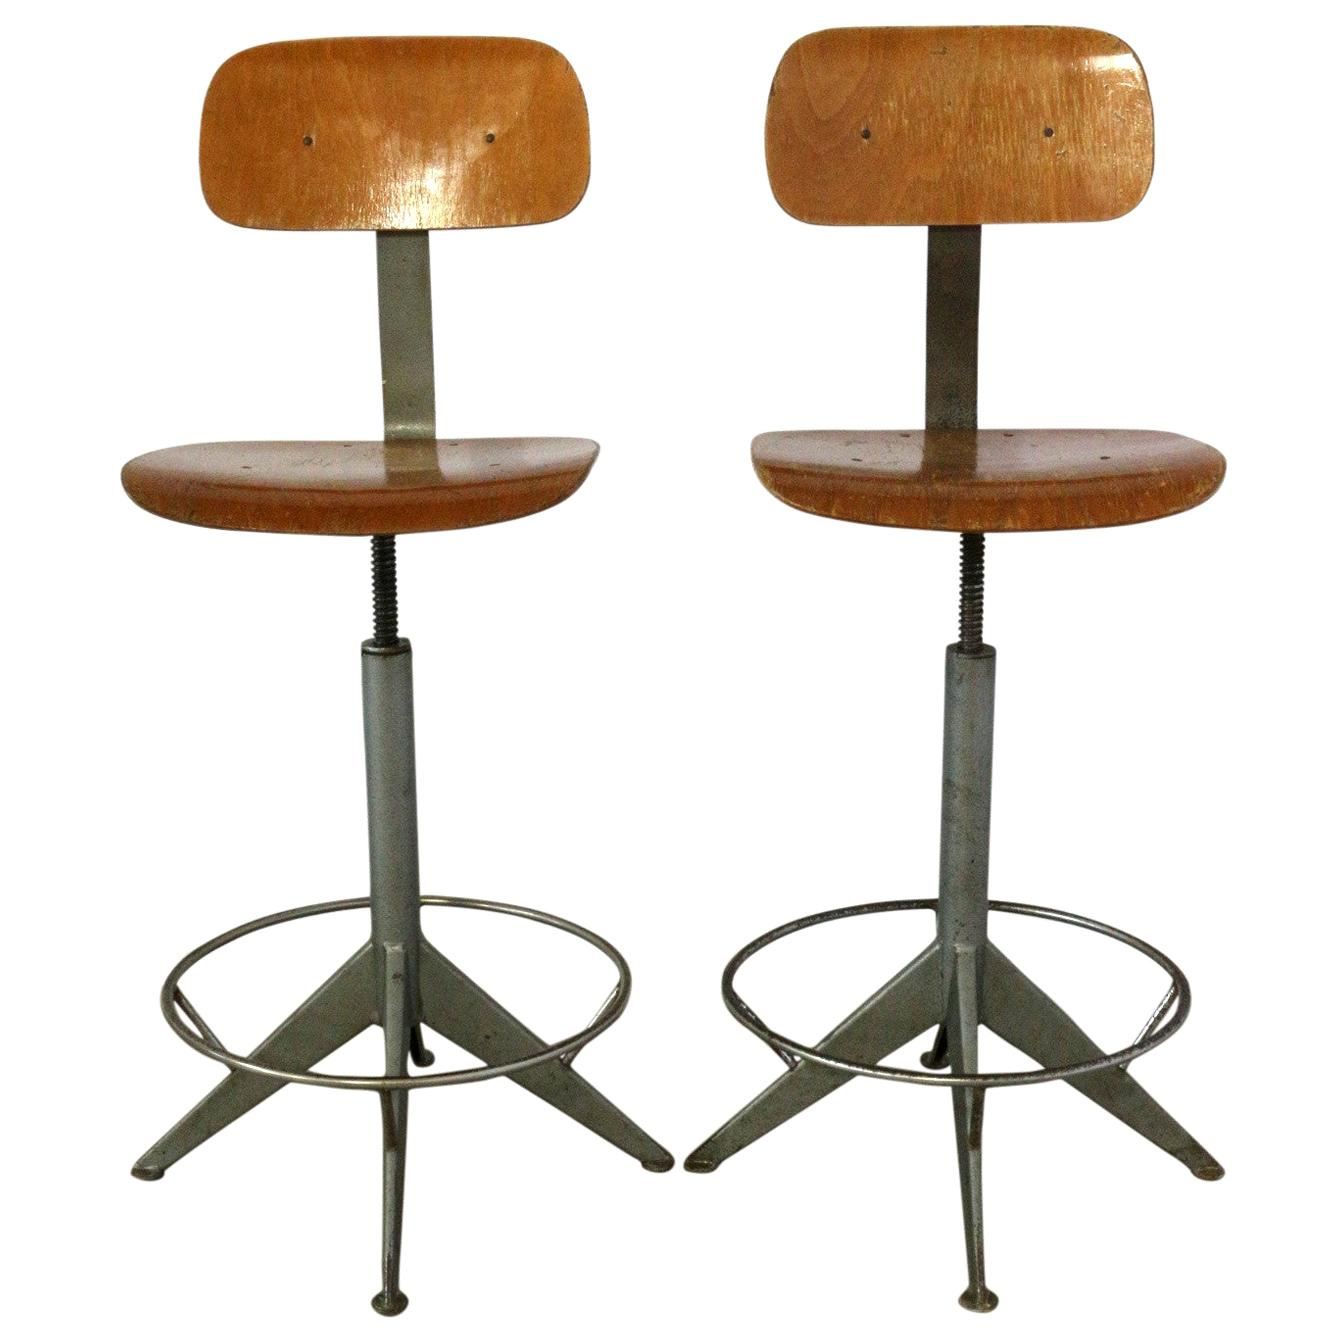 Two Midcentury Industrial Architect Chairs Friso Kramer Style Price Per Item